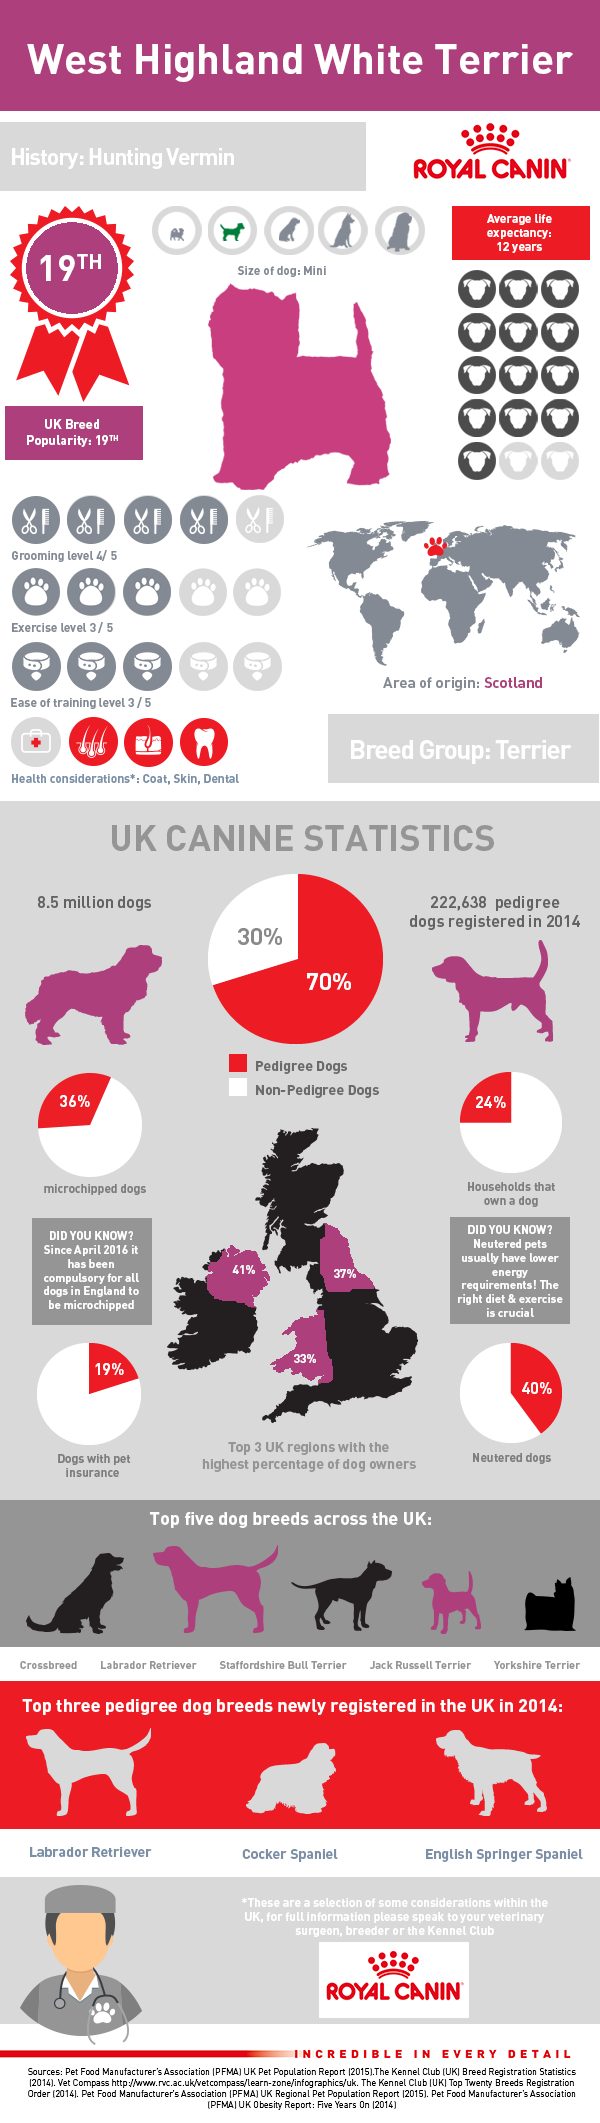 infographic-west-highland-white-terrier